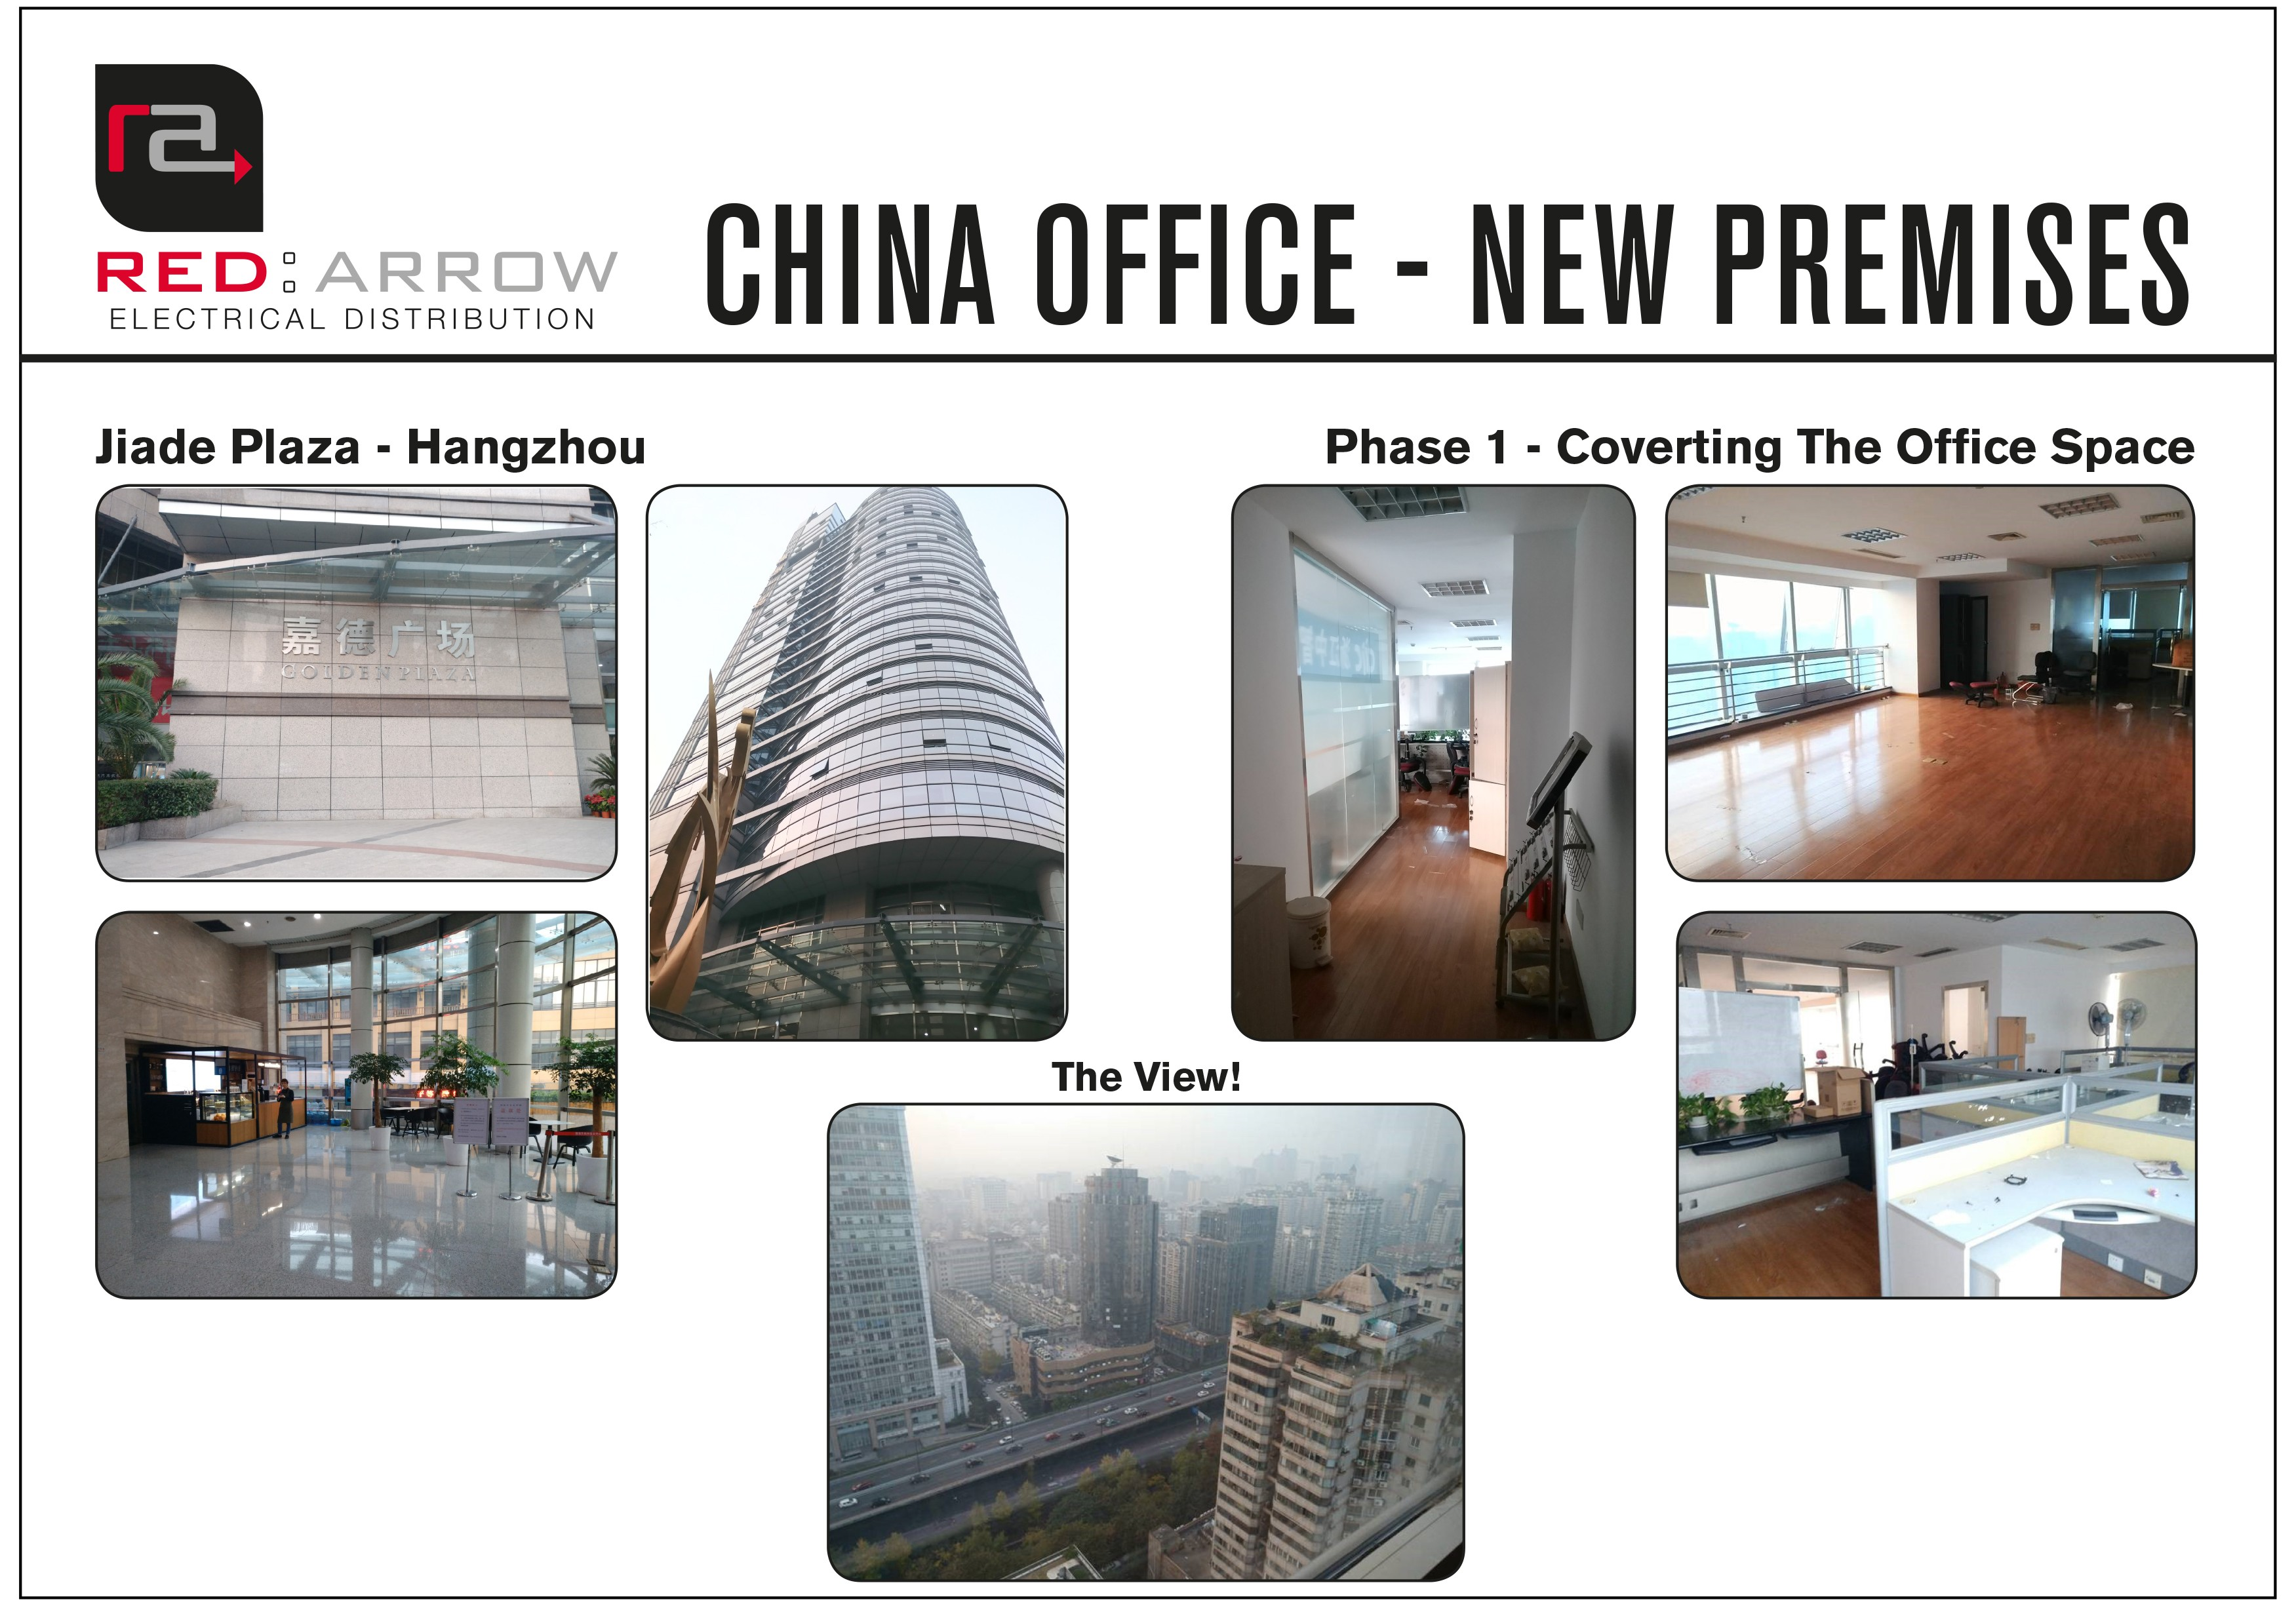 New Premises for the Red Arrow China Office